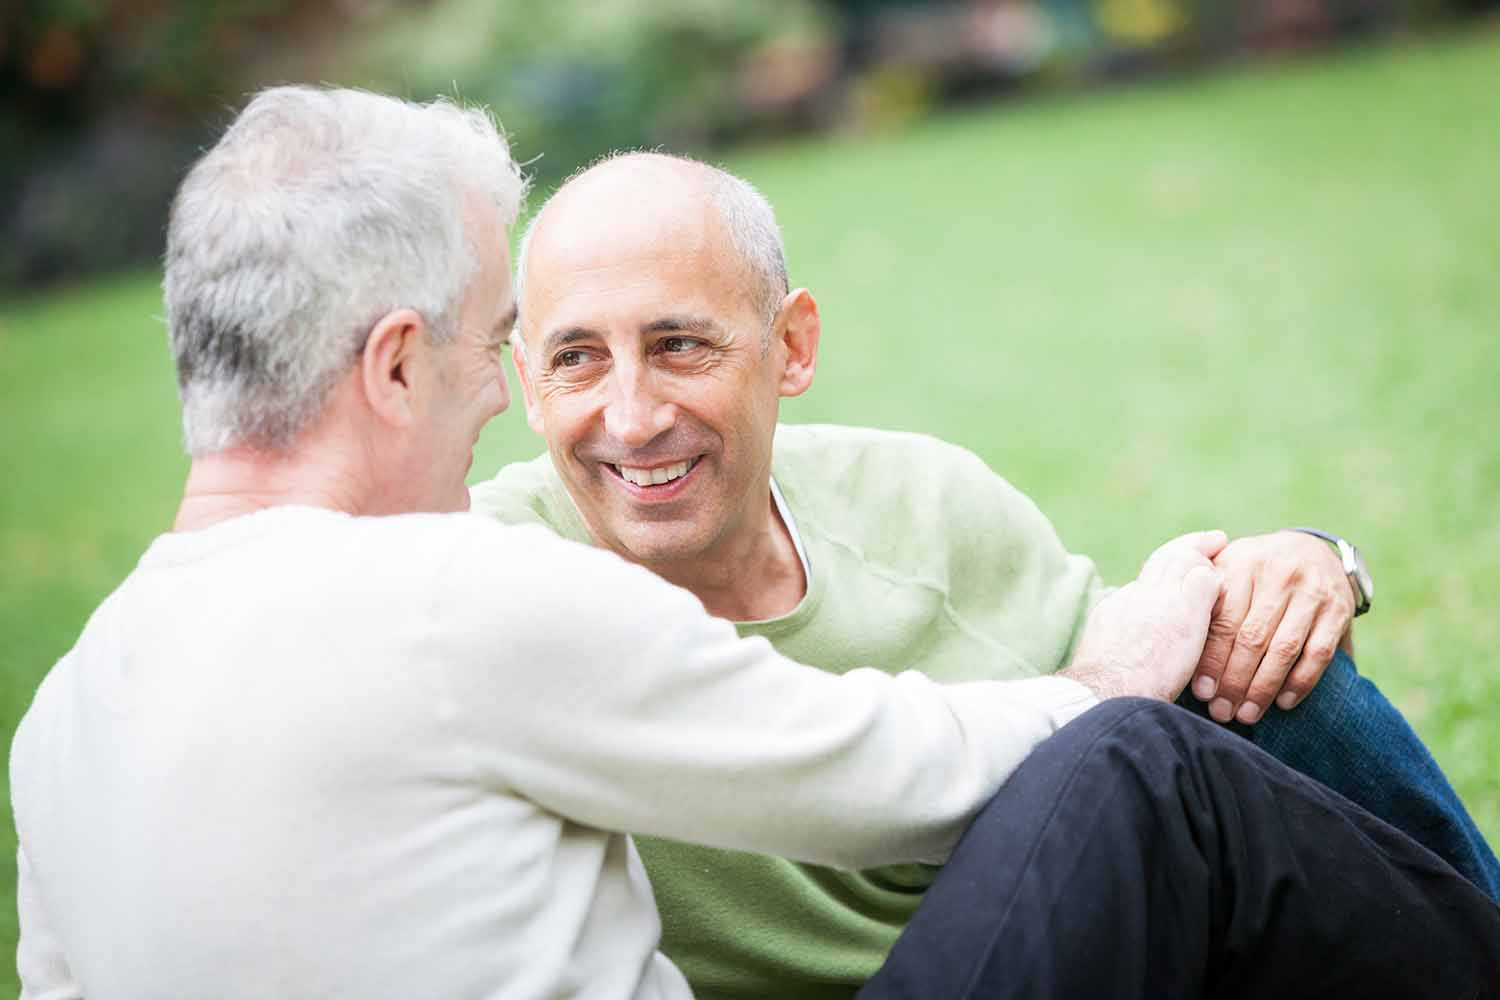 Why Older Gay Men Are Attempting Suicide at a Higher Rate